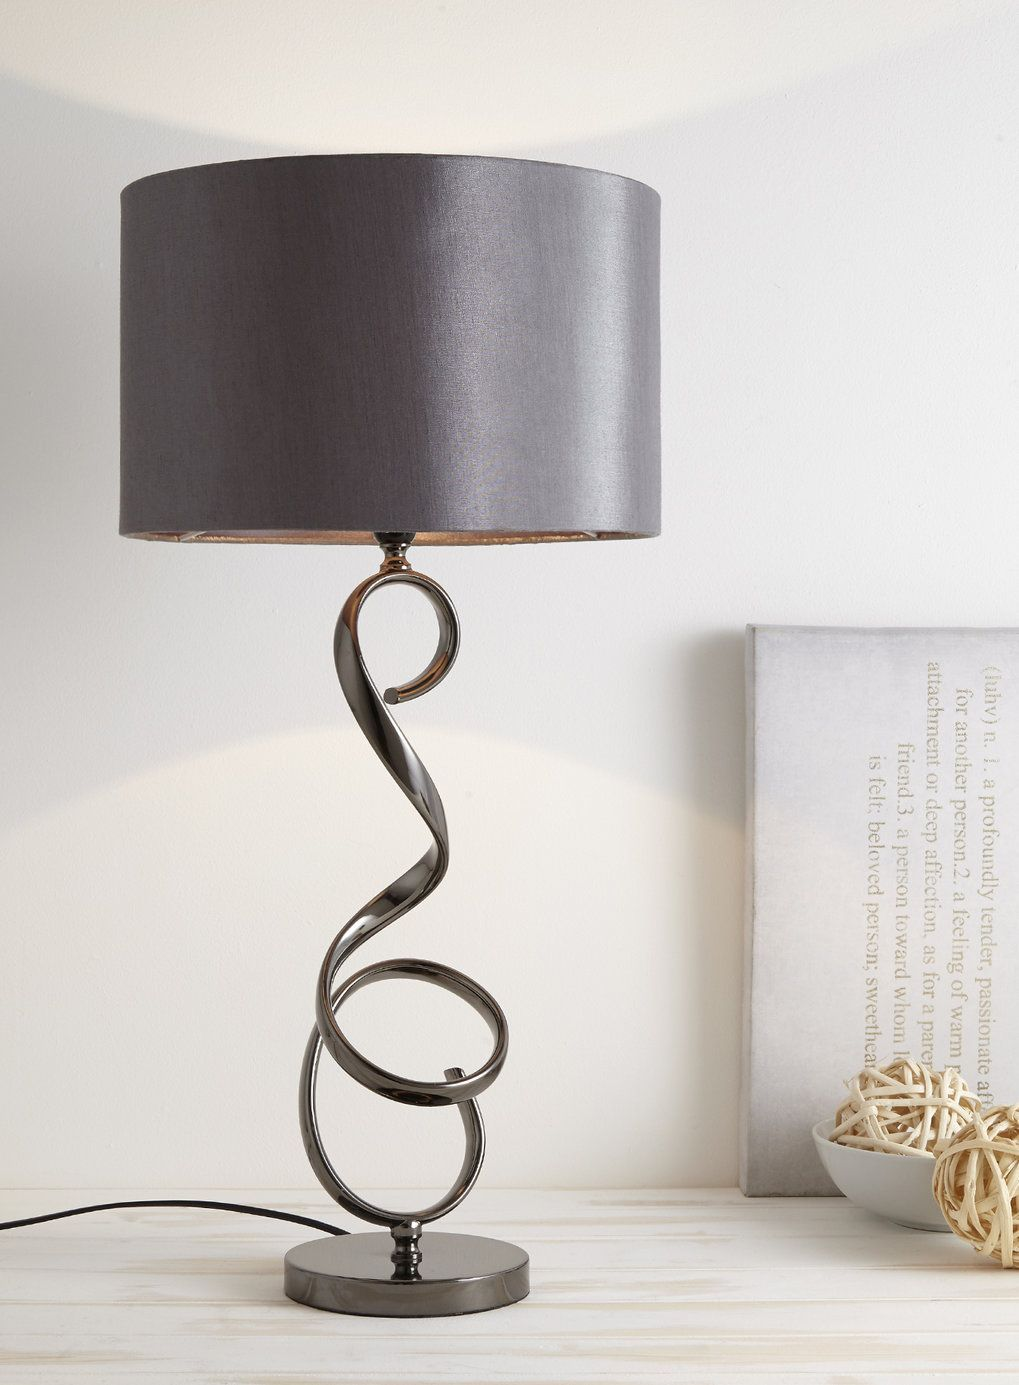 Carter Table Lamp   BHS. Carter Table Lamp   BHS   Things for the new house   Pinterest